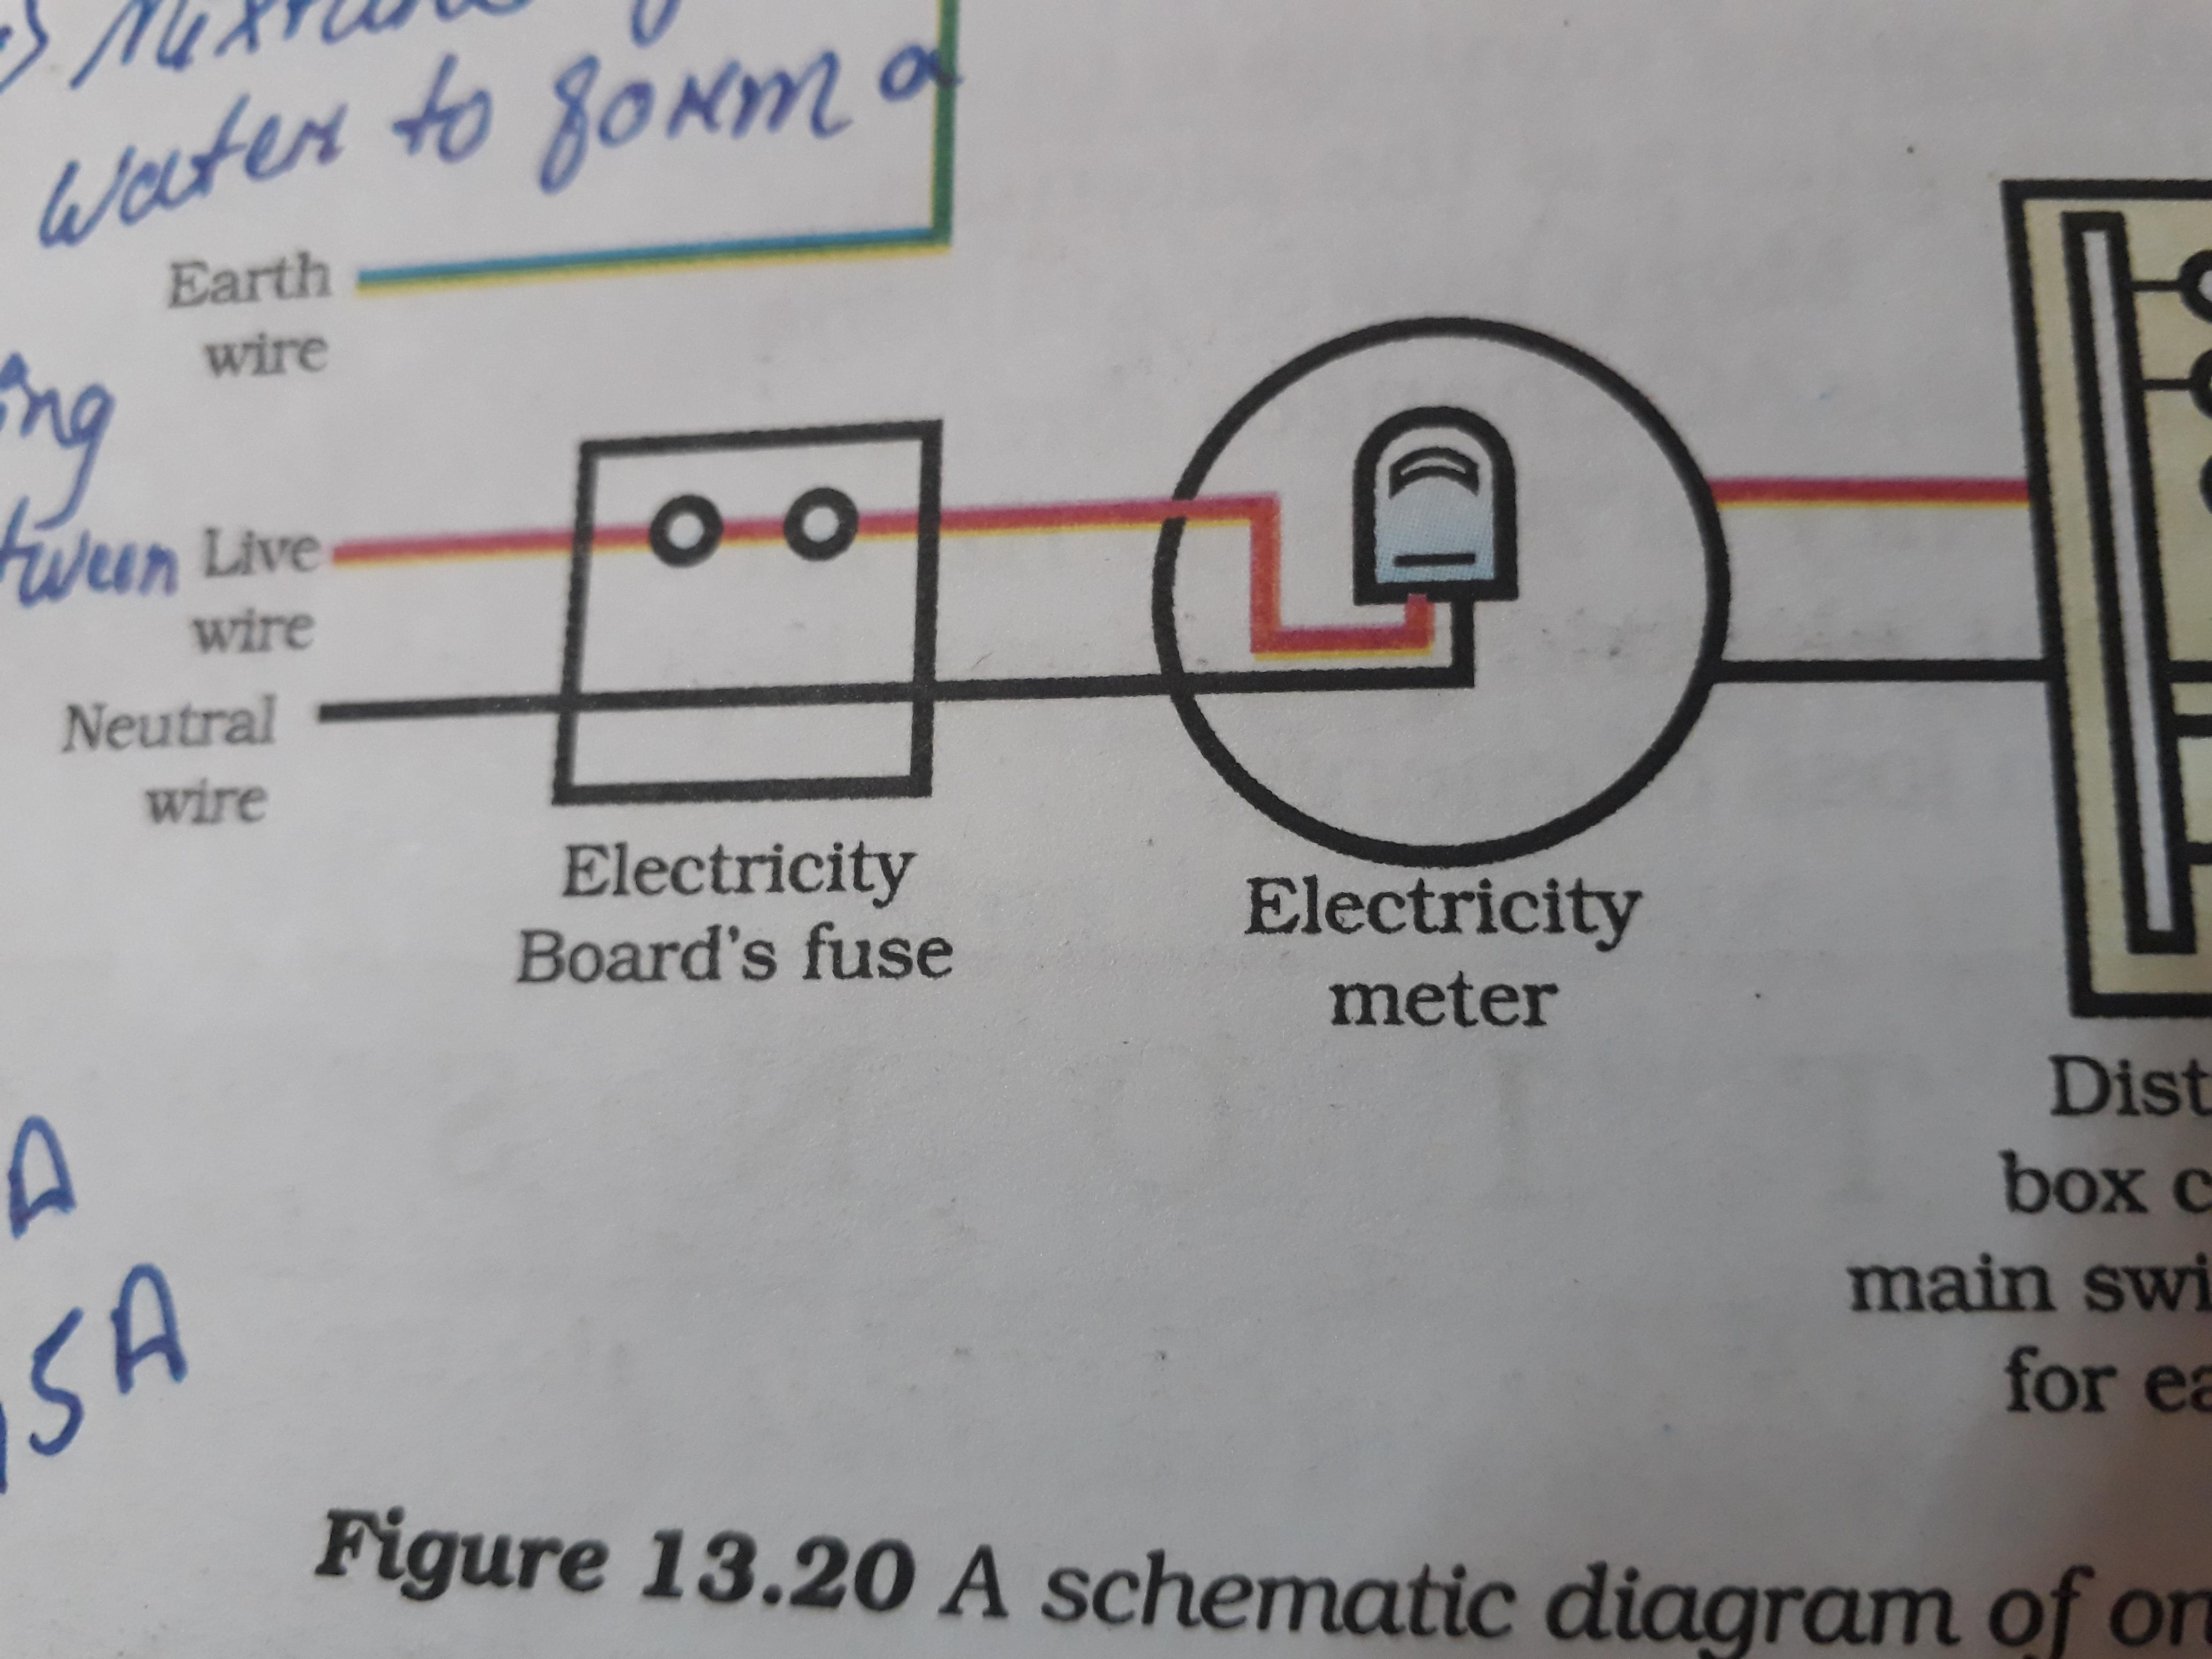 Give Circuit symbol of fuse and electric meter? - inly.in on